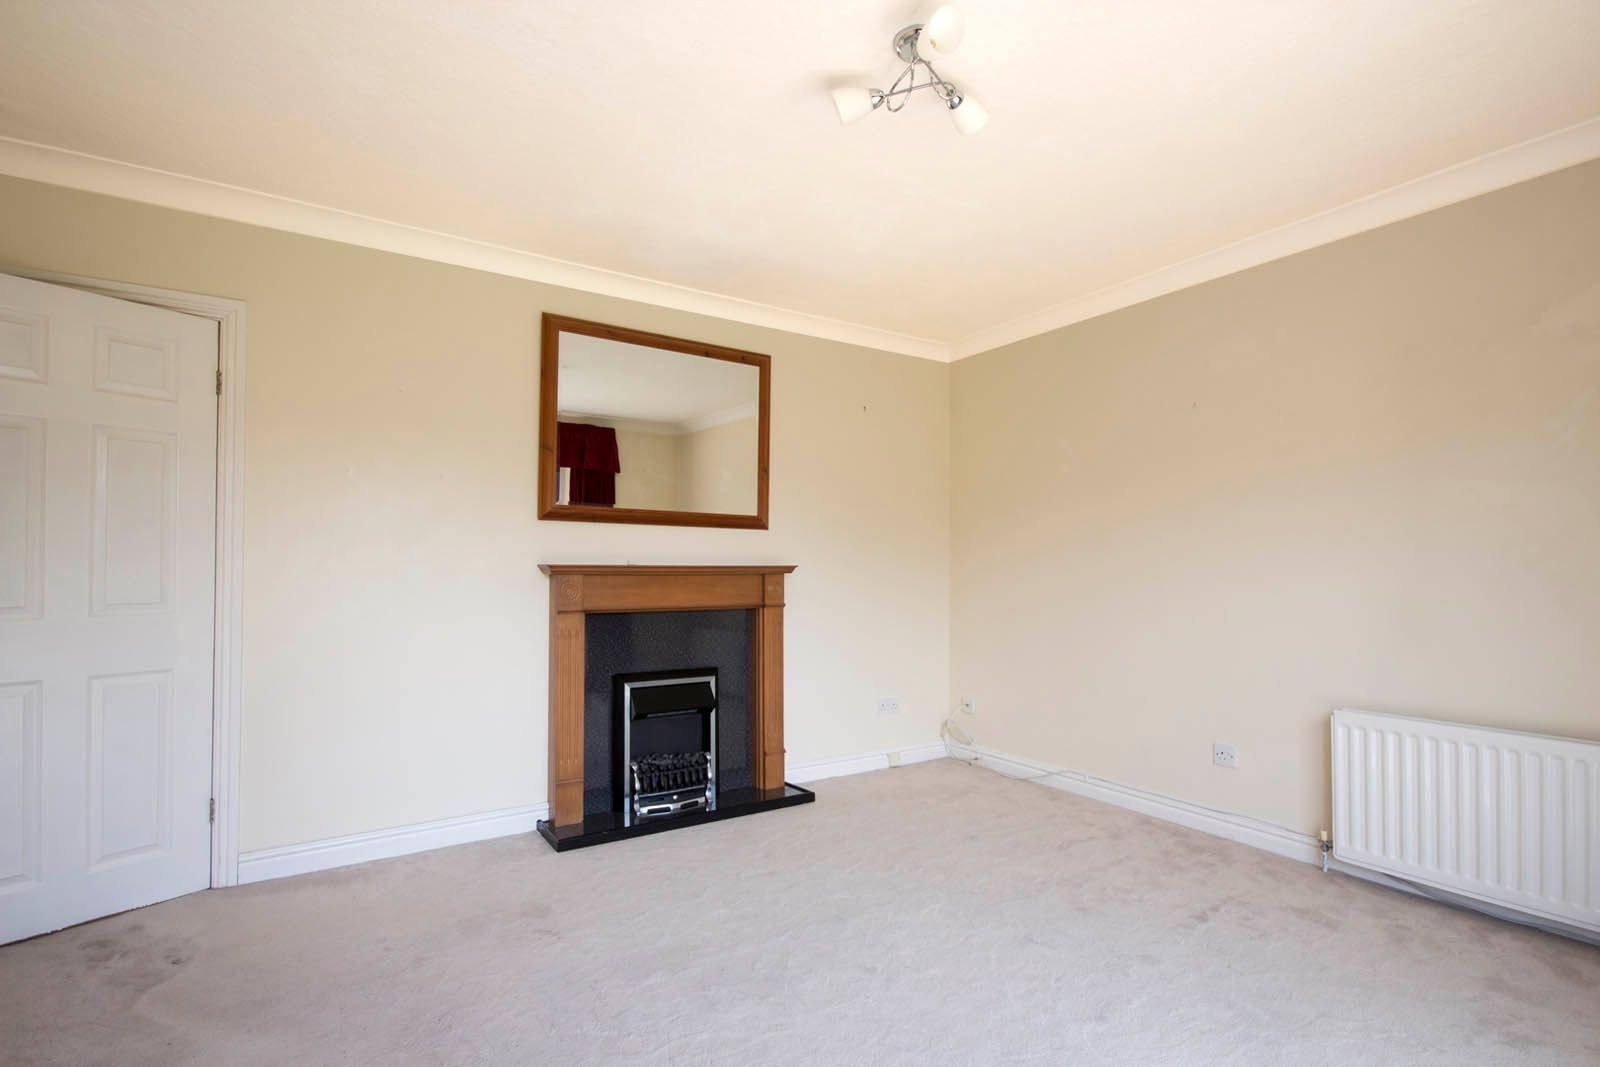 2 bed Apartment for sale in Rustington - Living Room (Property Image 4)